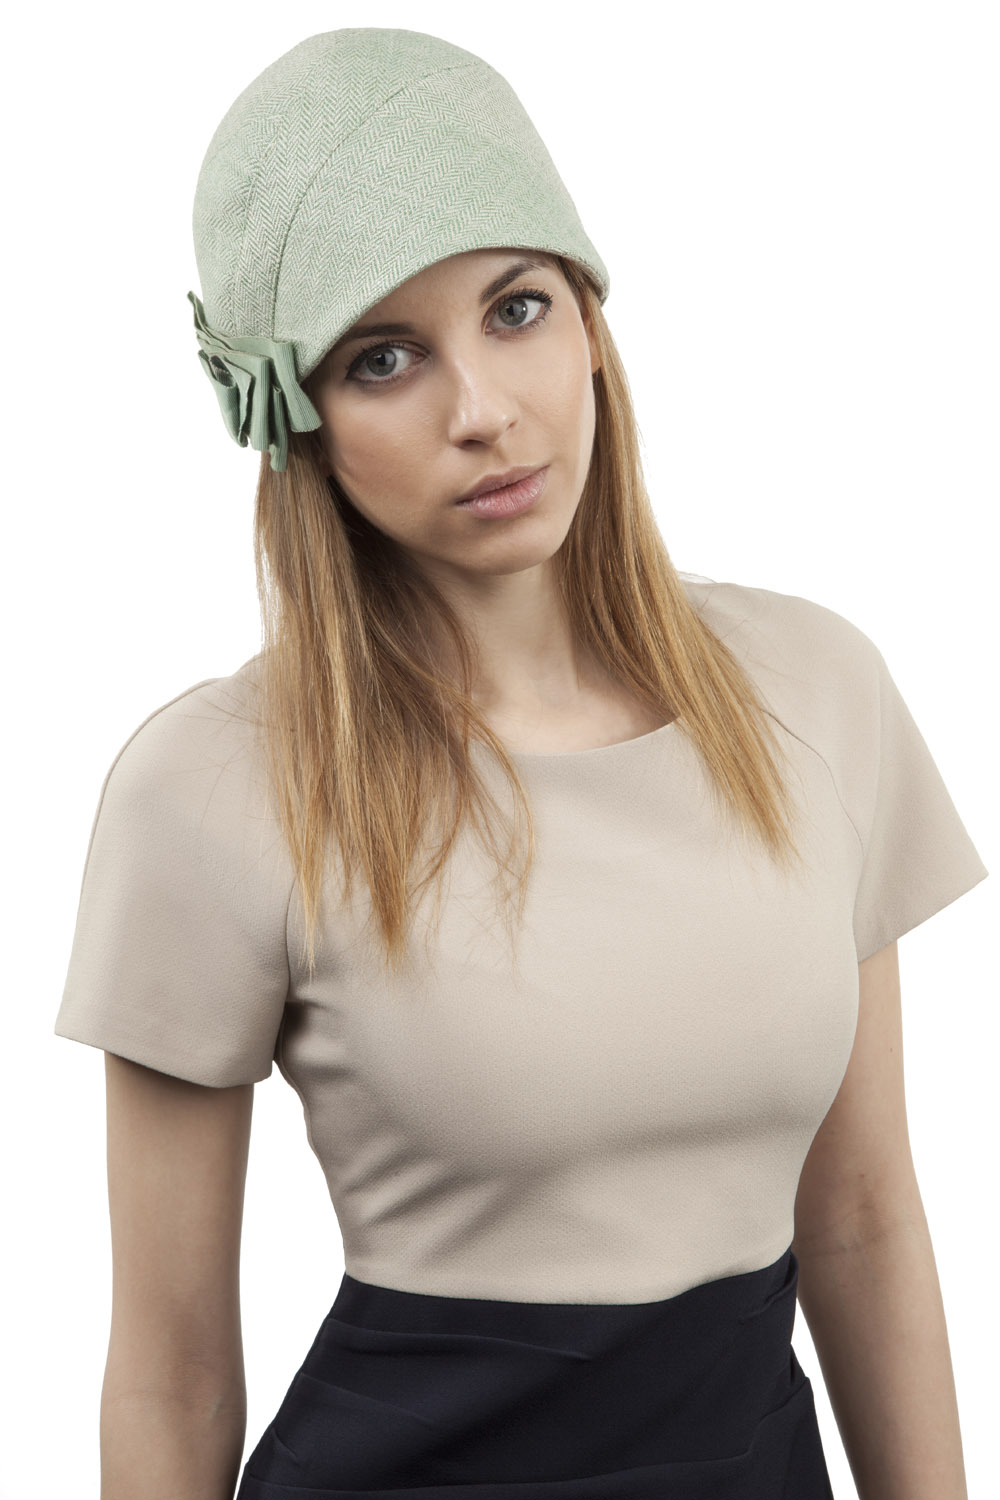 'Peppy' cloche hat